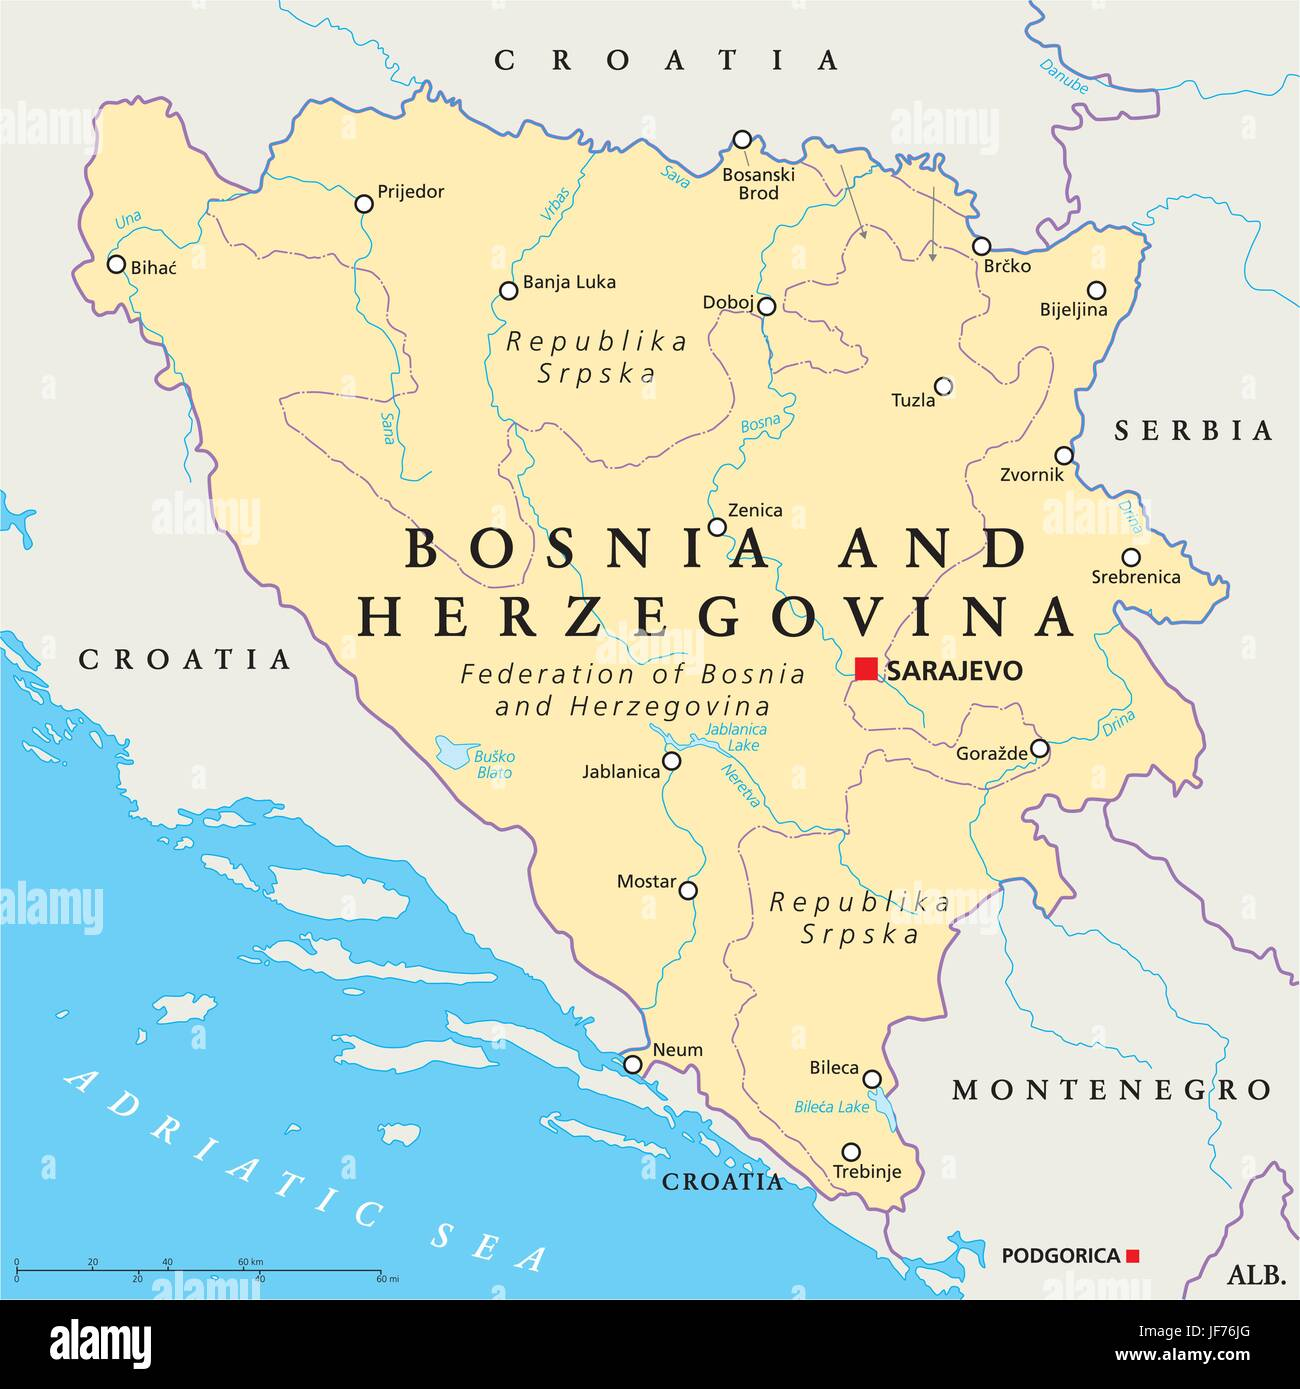 Bosnia map atlas map of the world travel europe adriatic sea bosnia map atlas map of the world travel europe adriatic sea croatia gumiabroncs Image collections